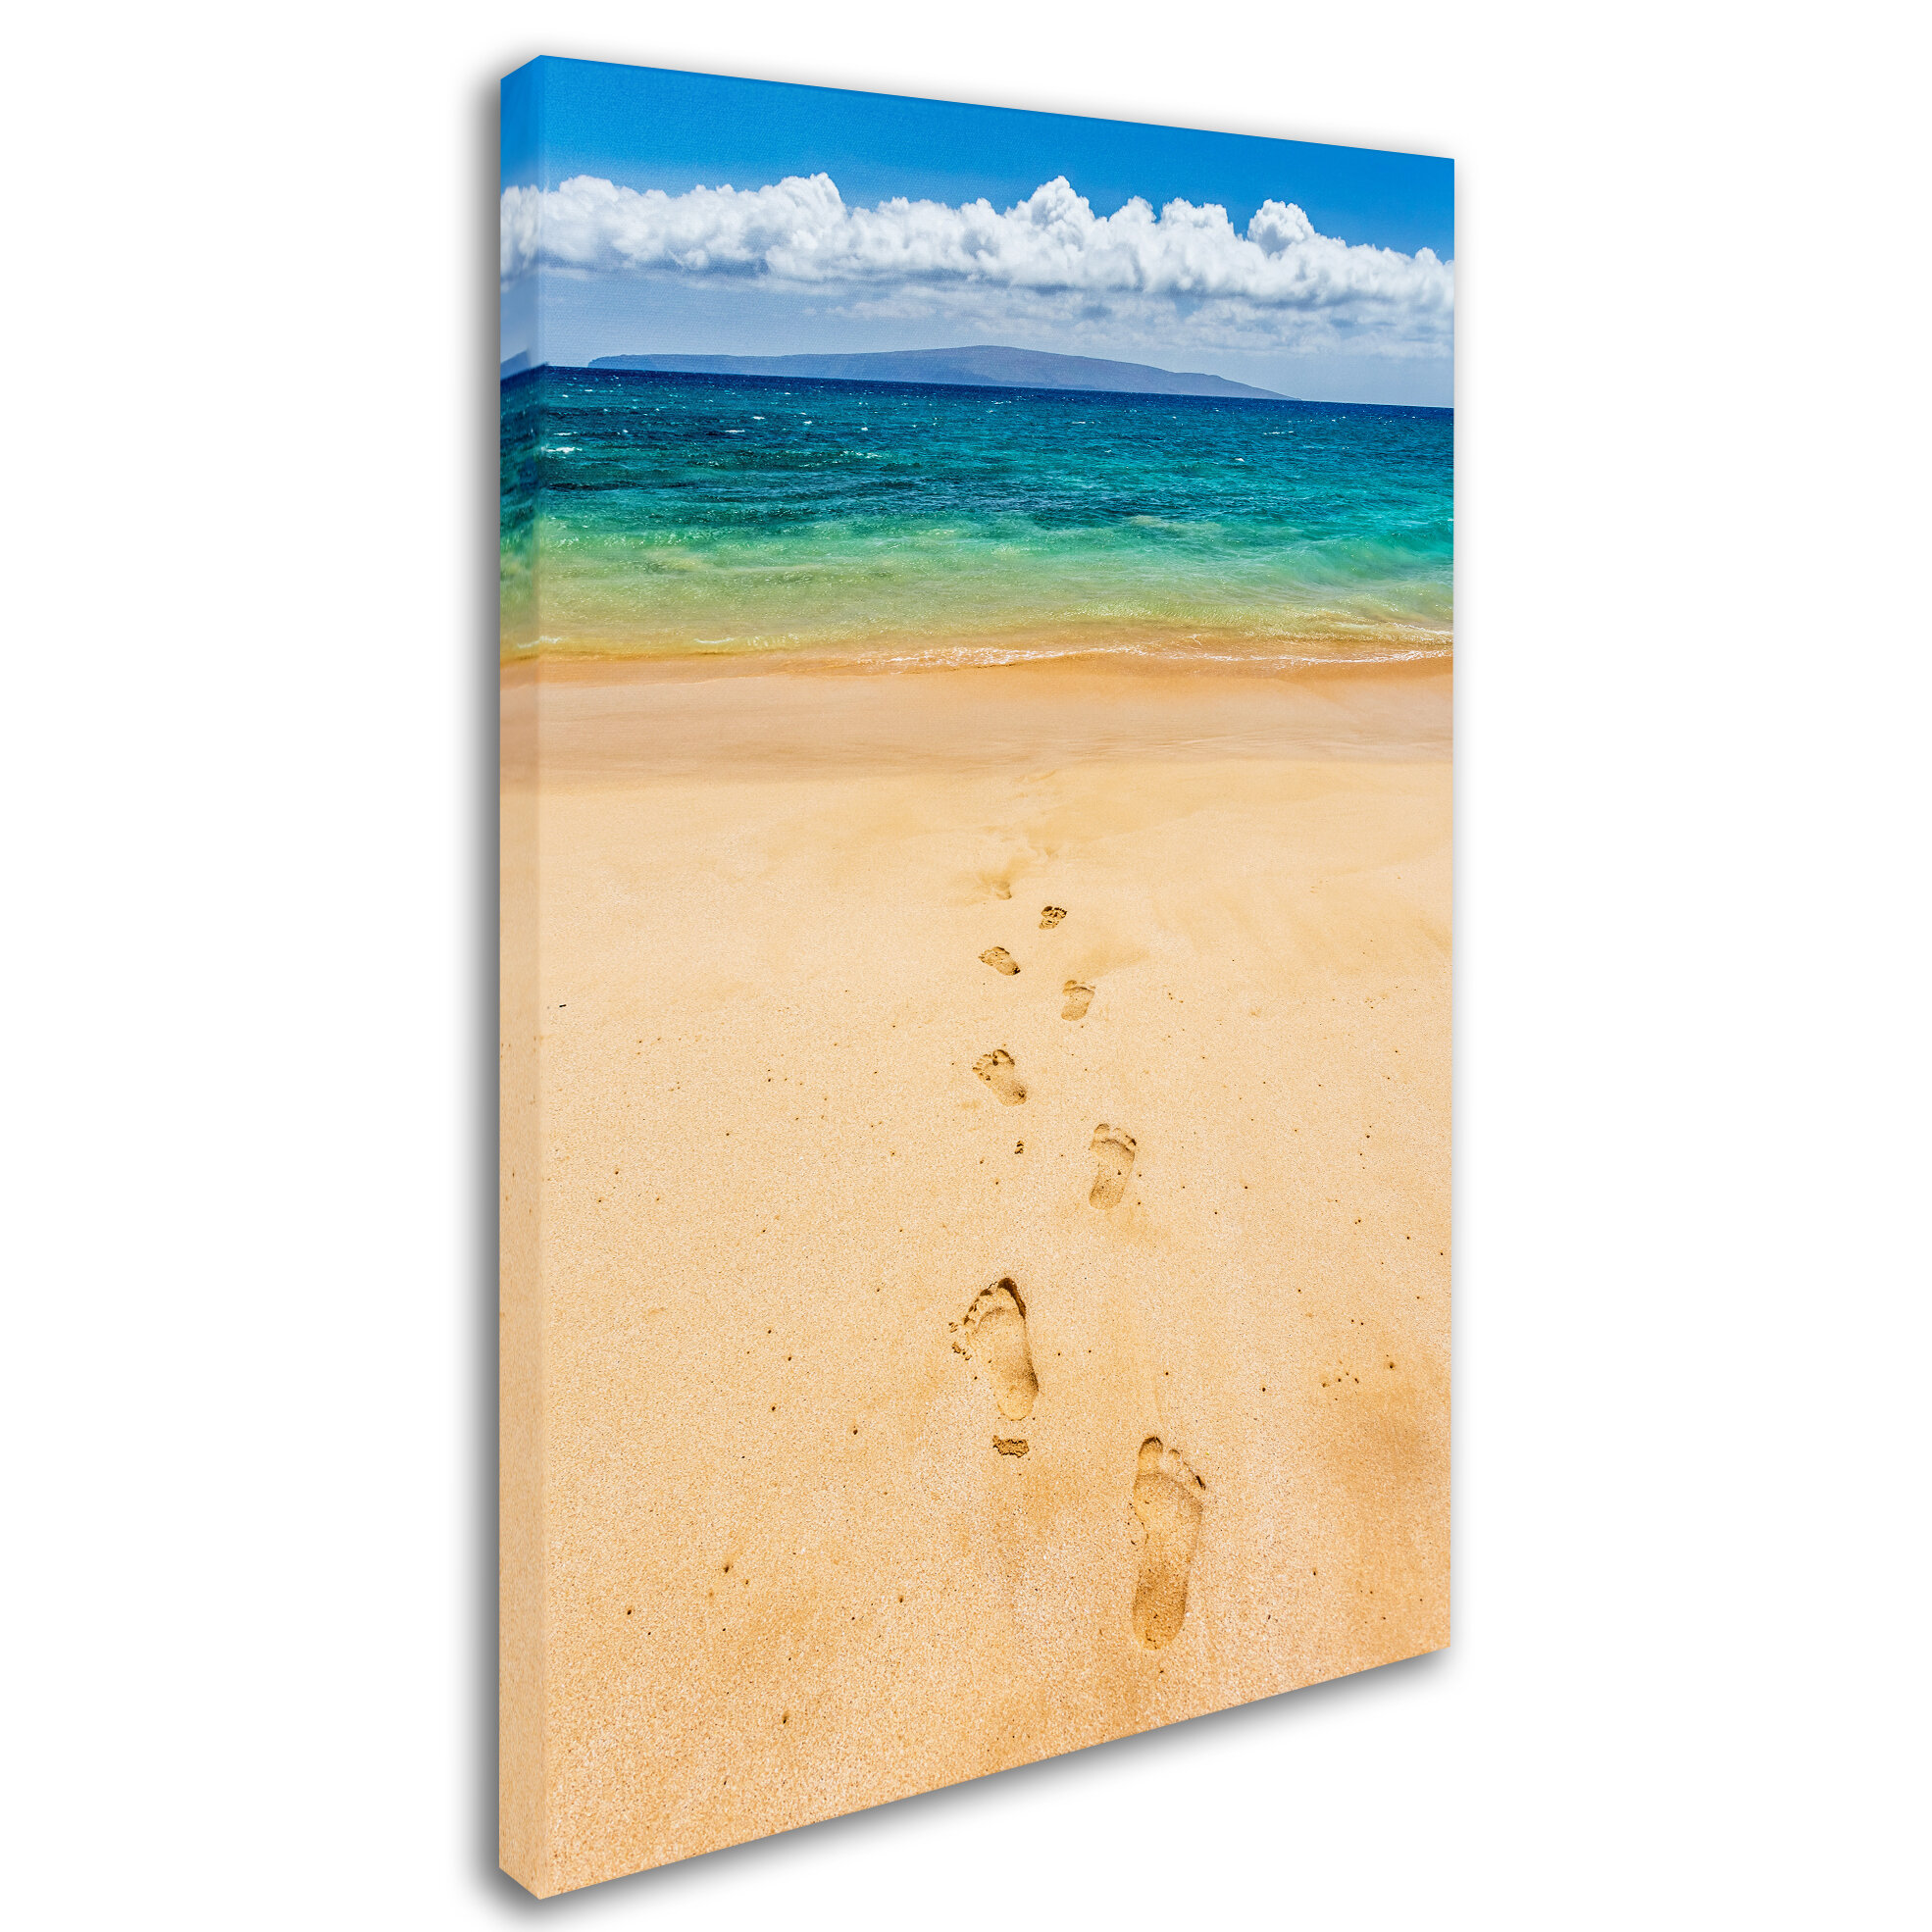 Trademark Art Footprints In The Sand By Pierre Leclerc Photographic Print On Wrapped Canvas Wayfair